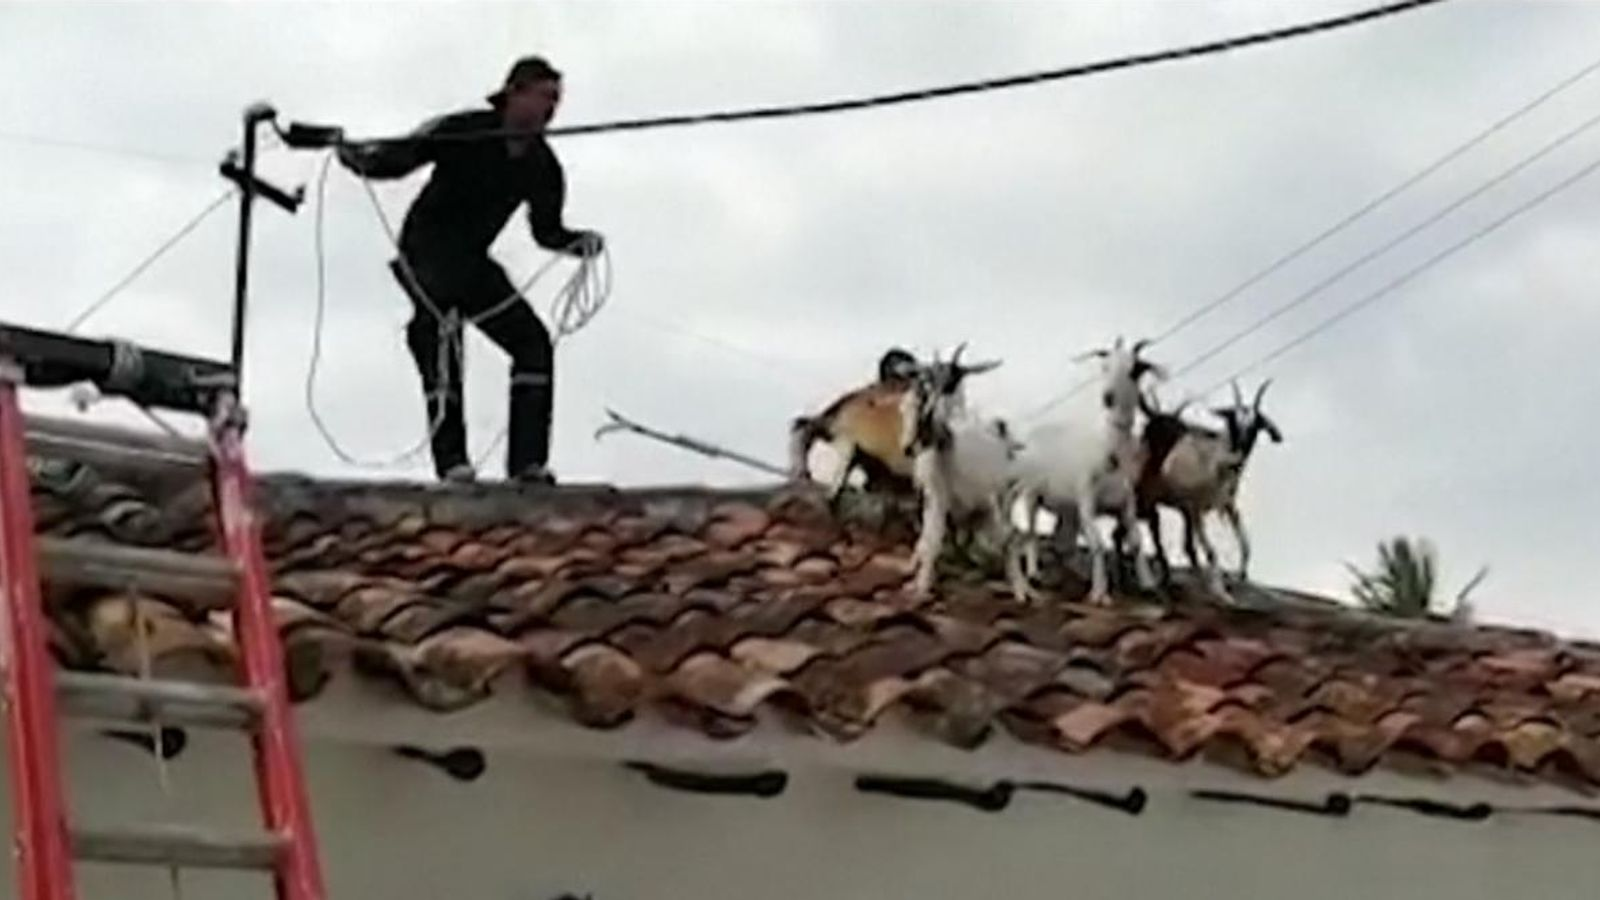 Colombia: Goats kidding around on rooftop rescued | World News | Sky News